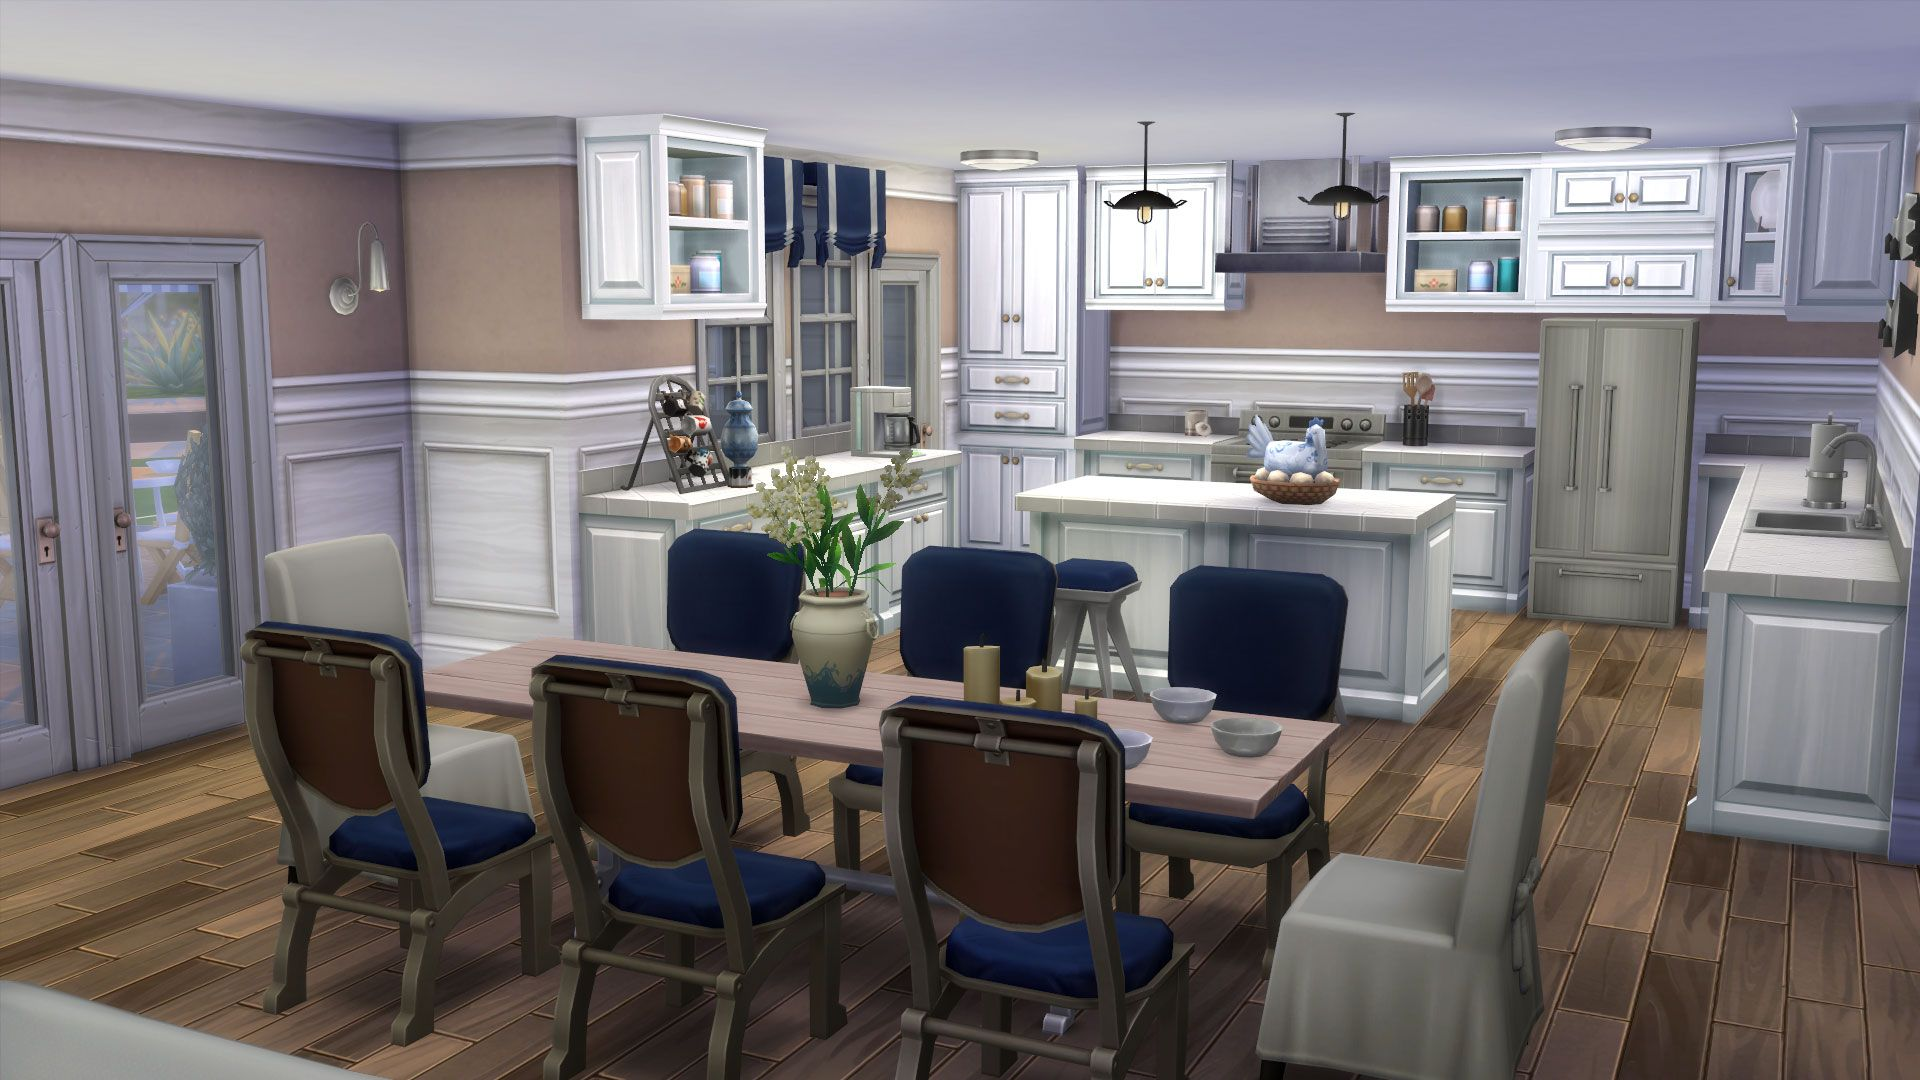 33 best d d dµd d d n don n d d sims 4 images on pinterest sims sims 3 and